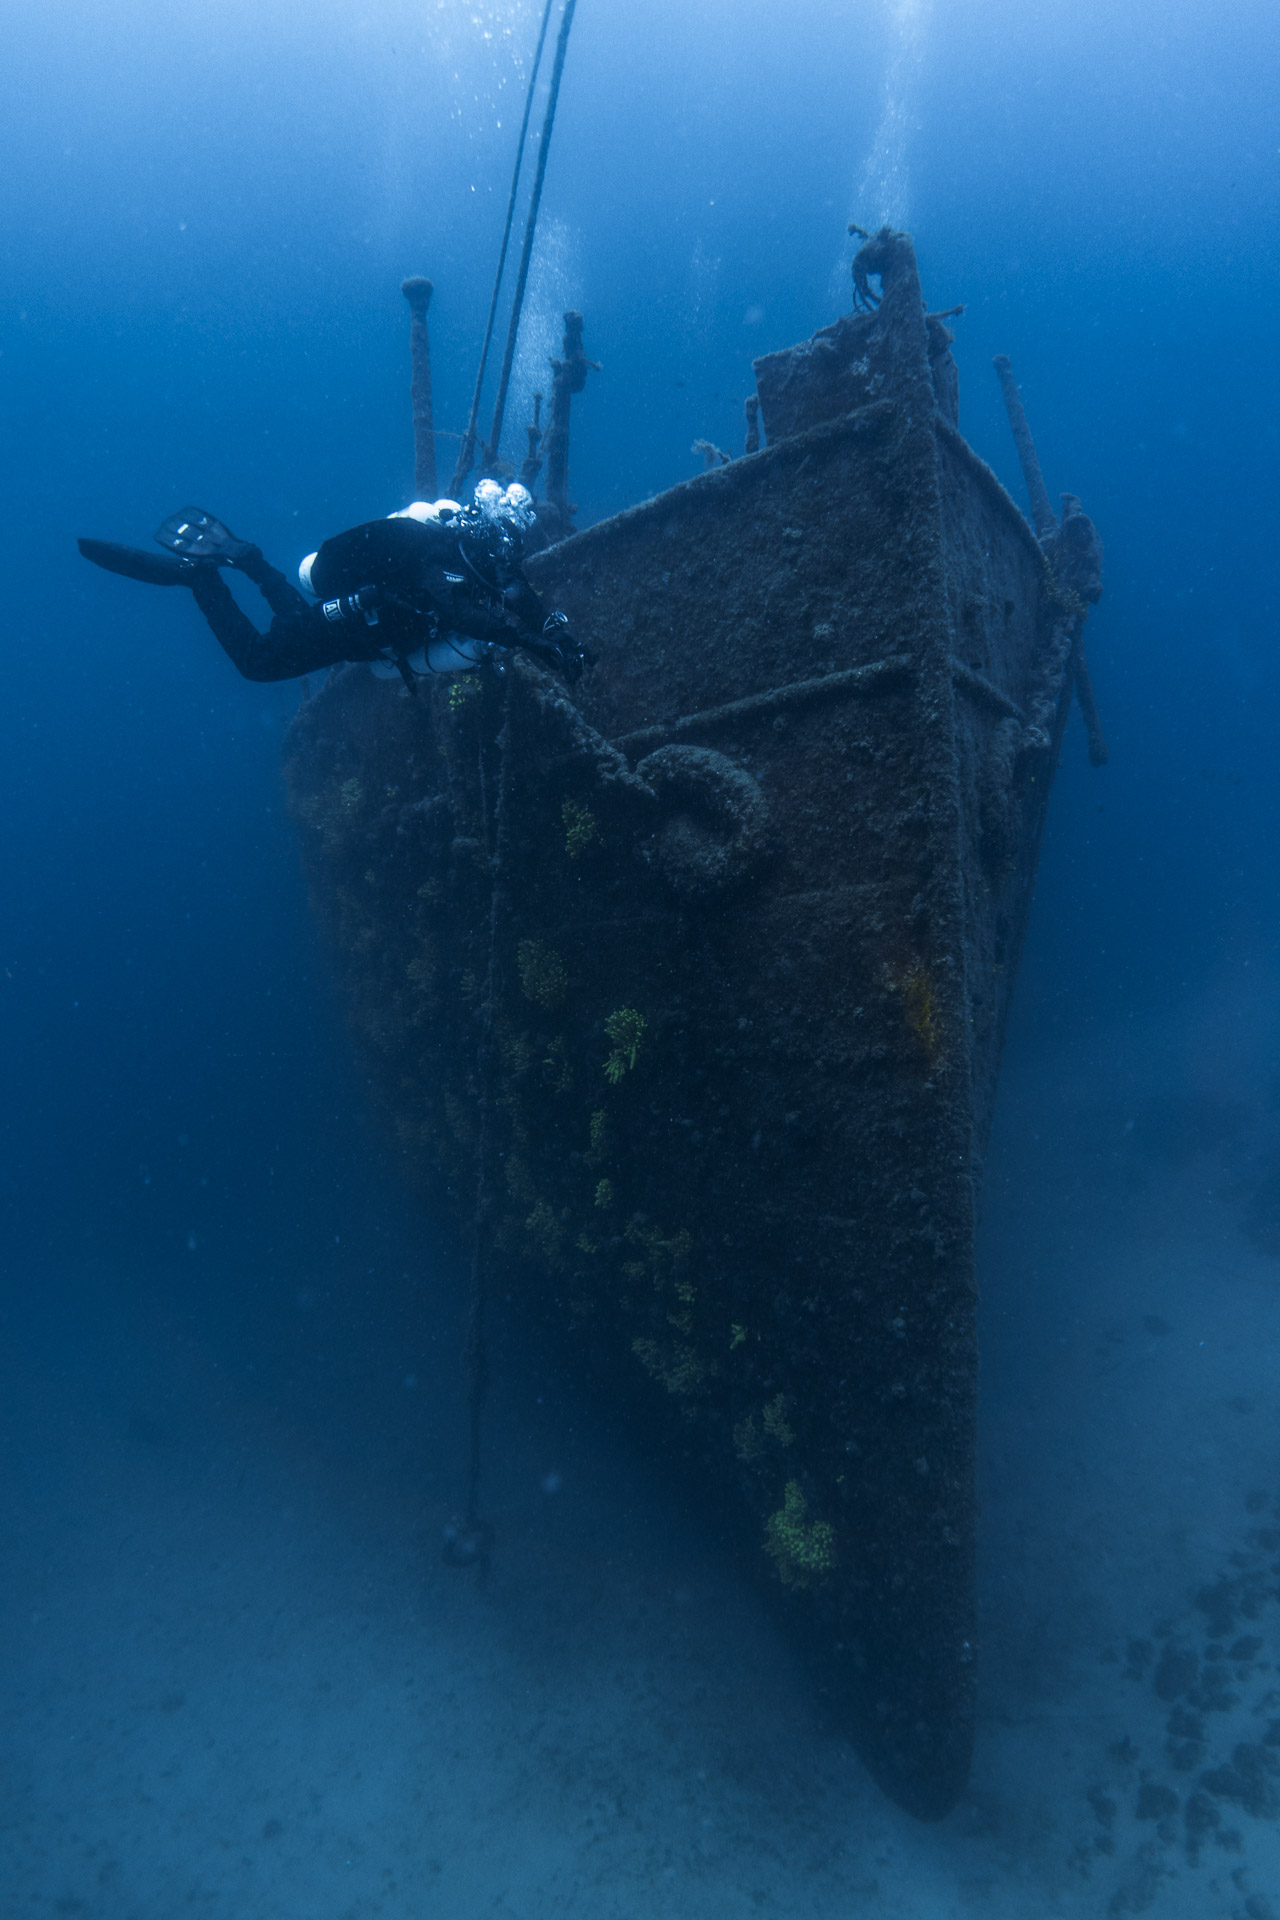 Diver and wreck in Croatia